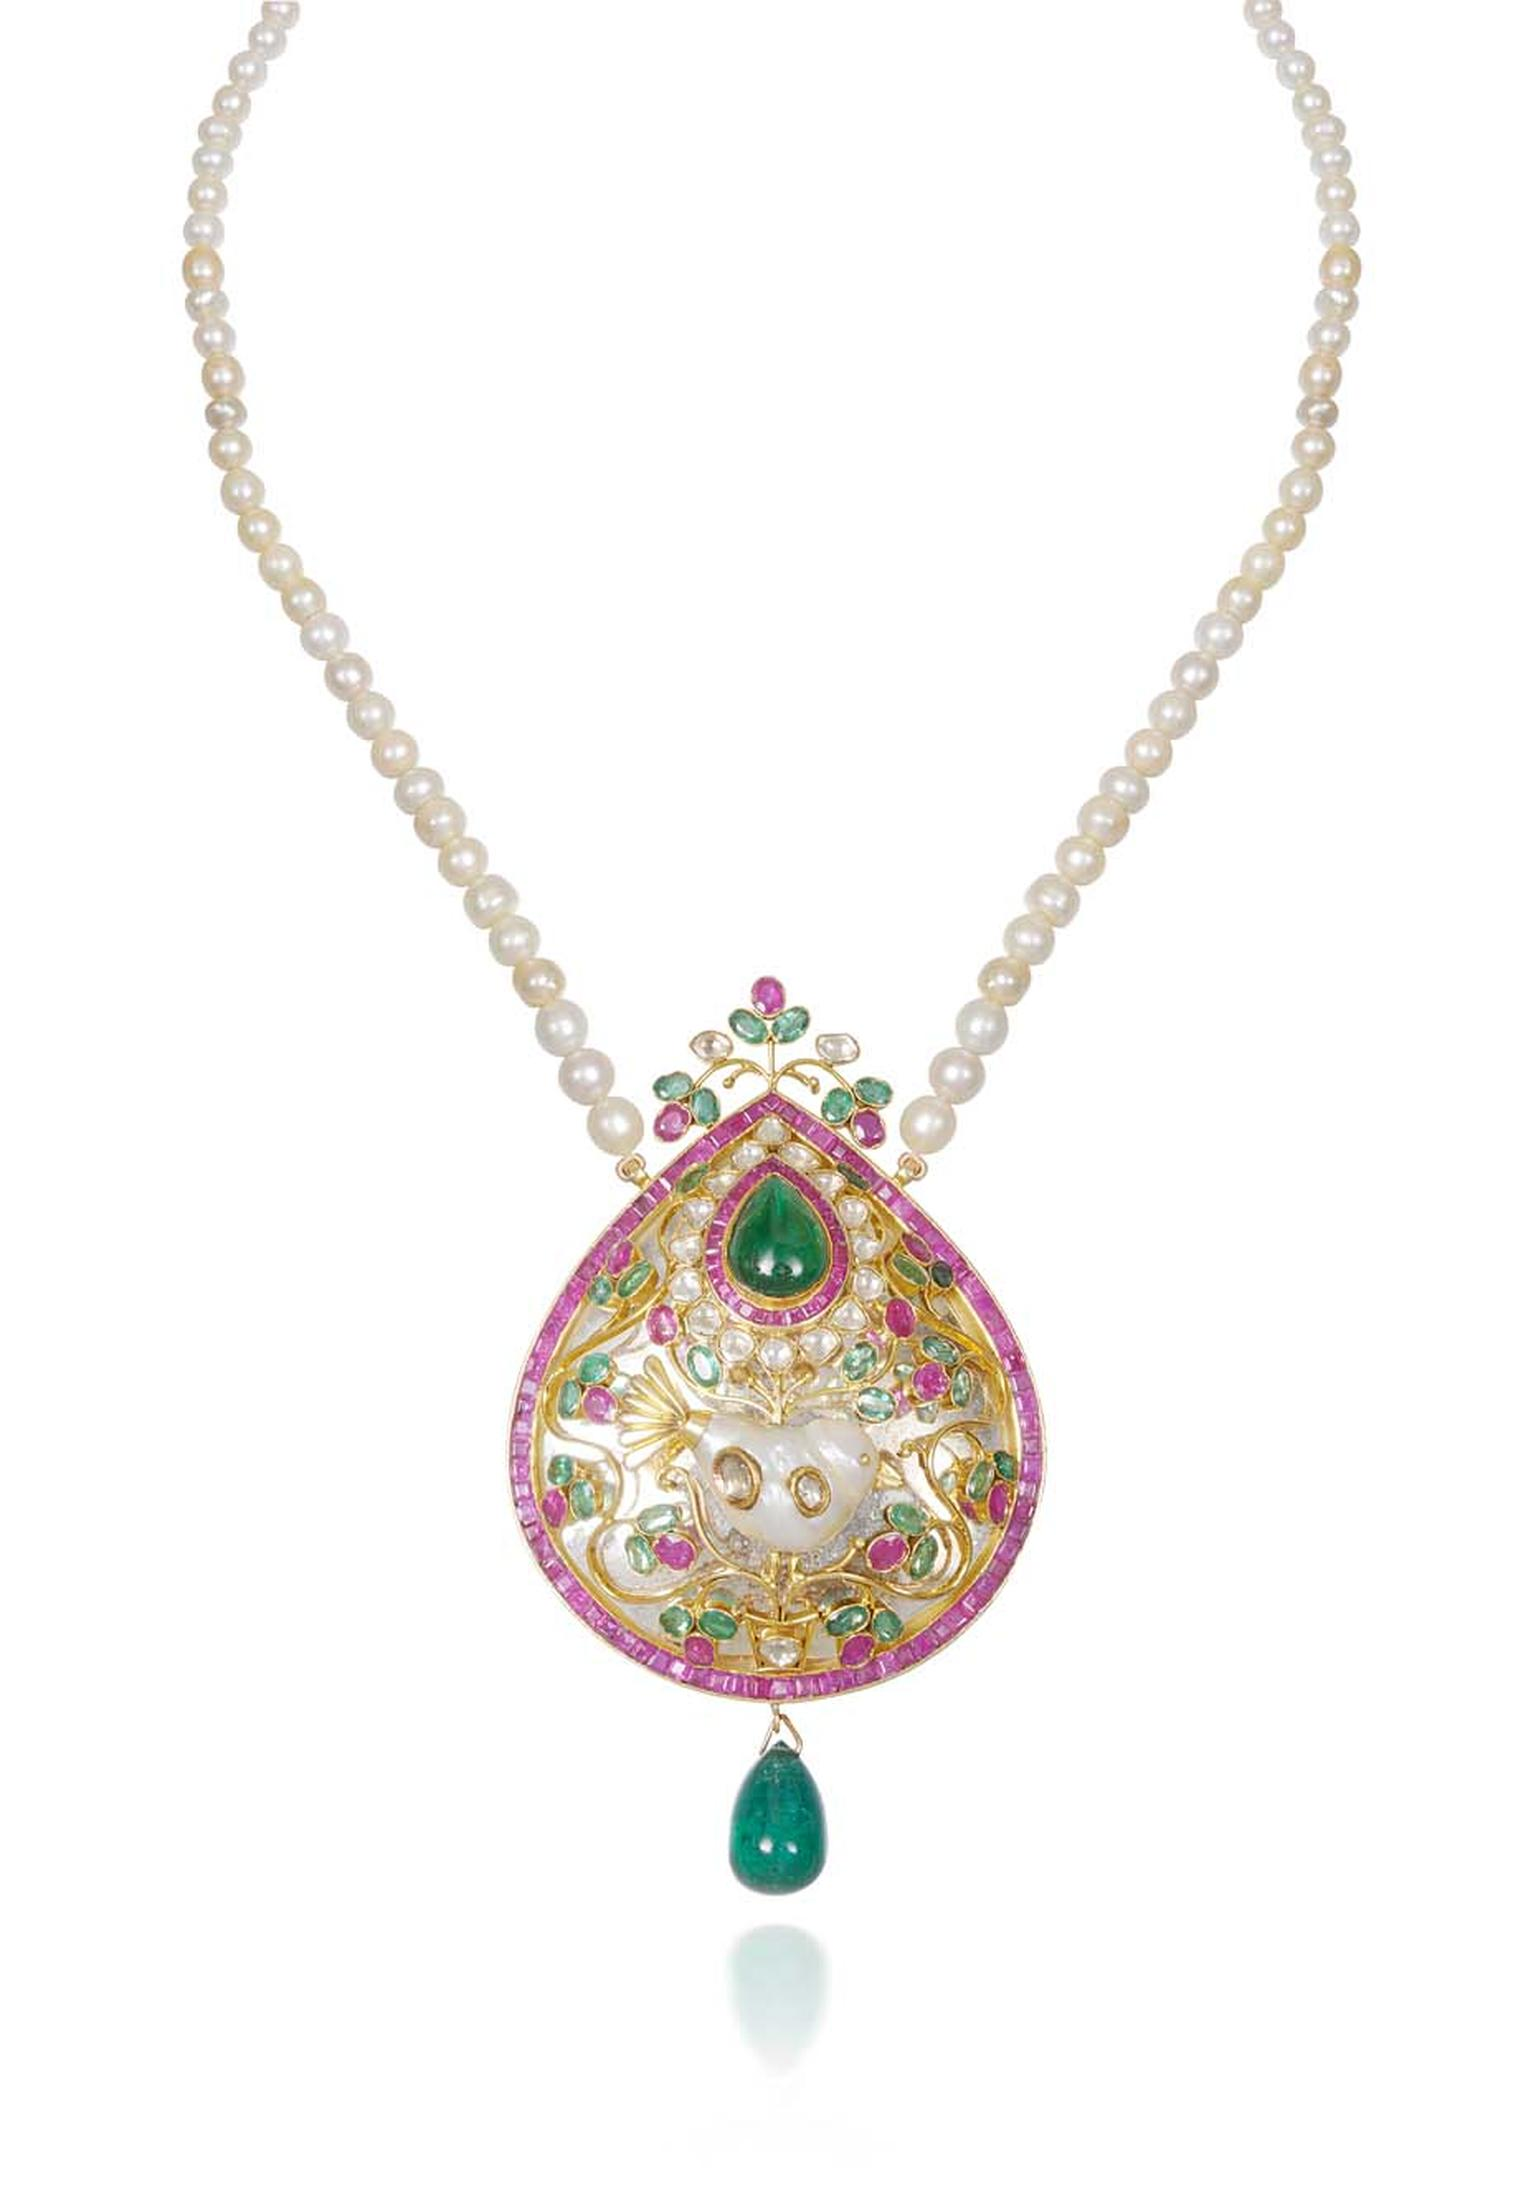 Lot 5, a traditional Kundan pendant harnessed by a string of pearls and set with diamonds and Gemfields emeralds and rubies, created by Lala Jugal Kishore Jewellers (estimate: INR 3,650,000 - 4,400,000; $61,000 - 73,500)